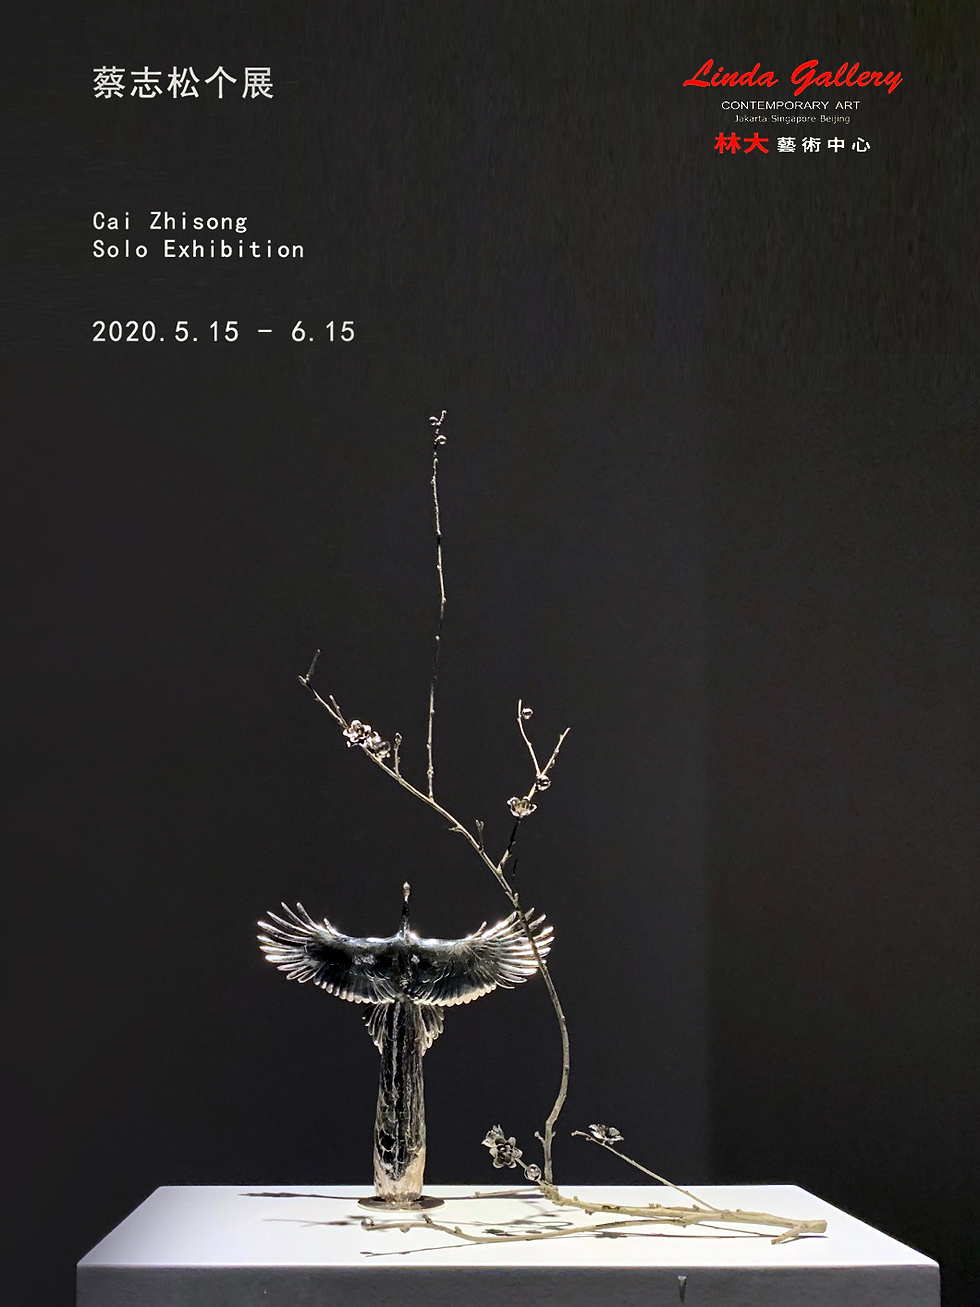 Cai Zhisong Solo Exhibition